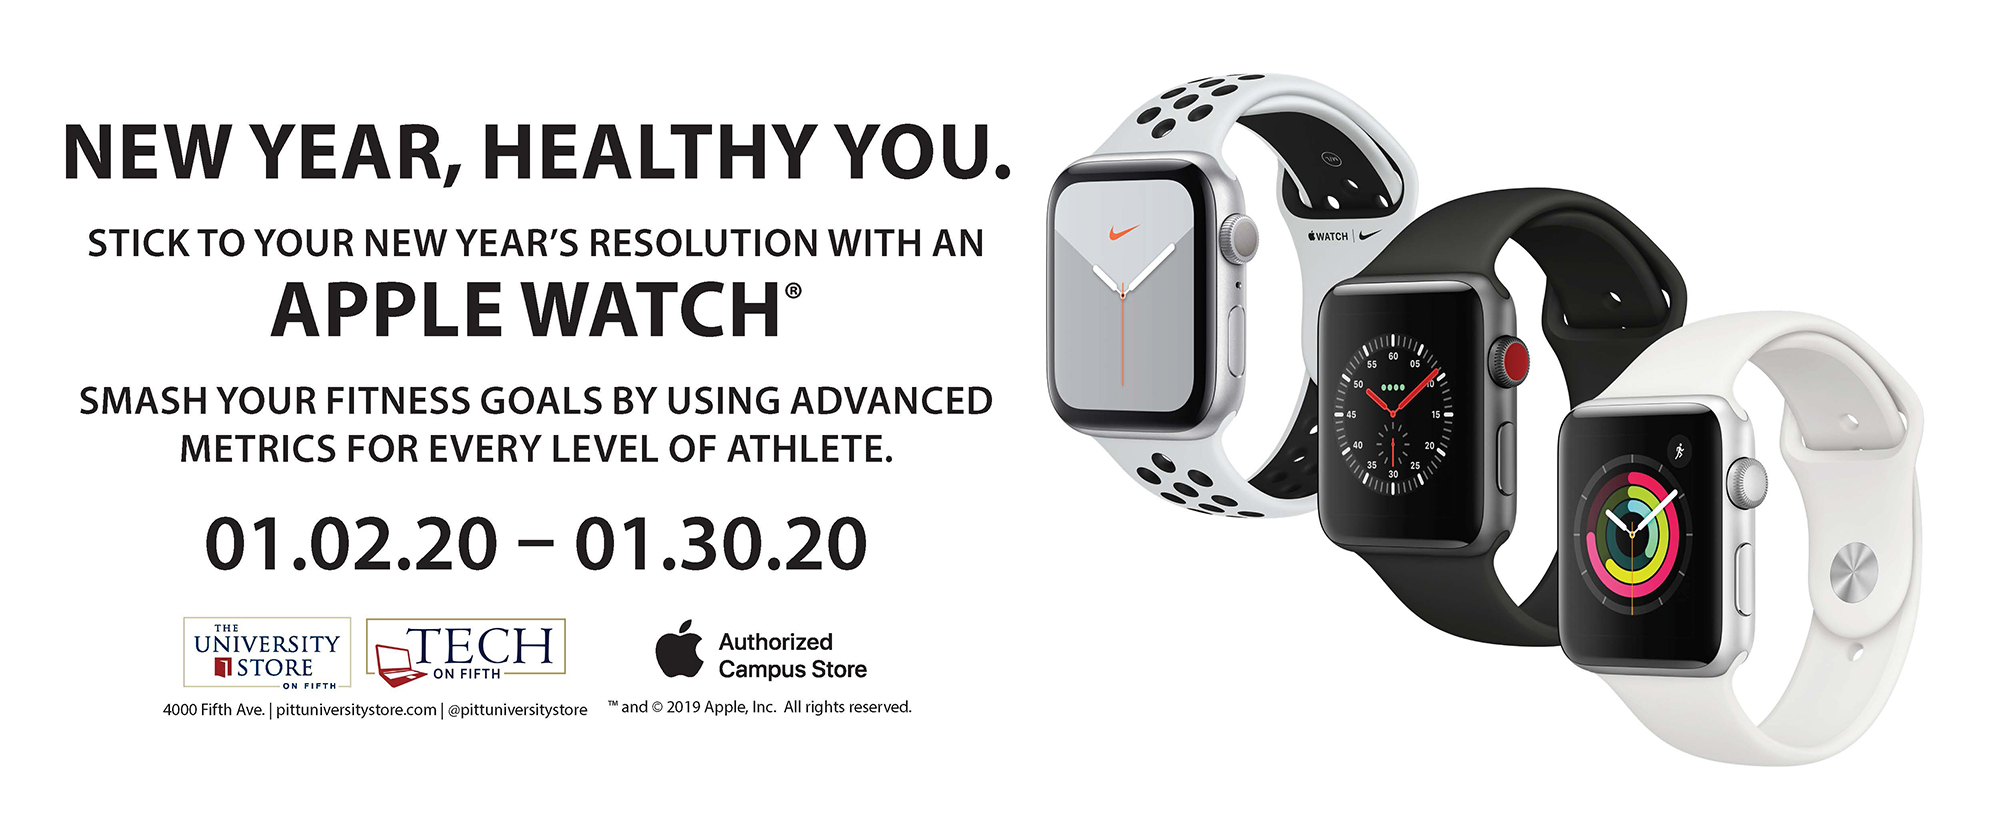 Apple Watch Promotion